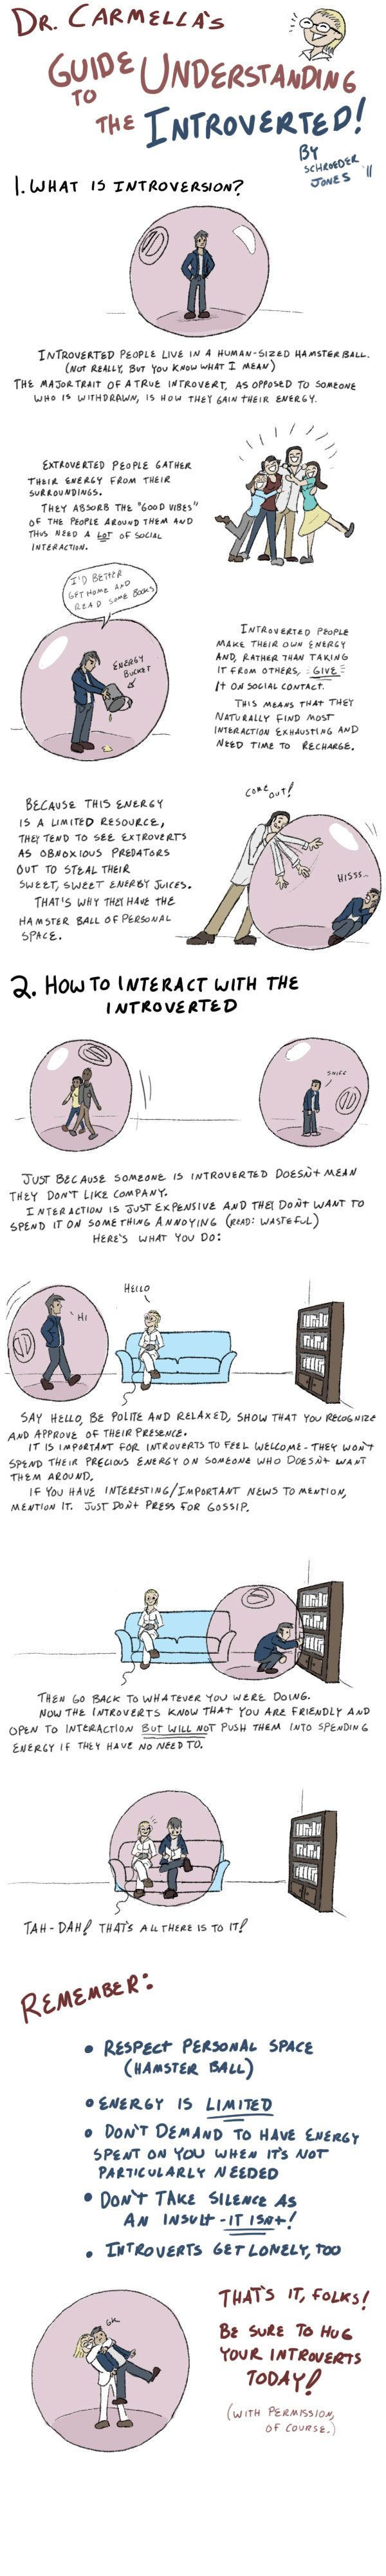 Infographic: A Guide To Understanding Introverts - DesignTAXI.com